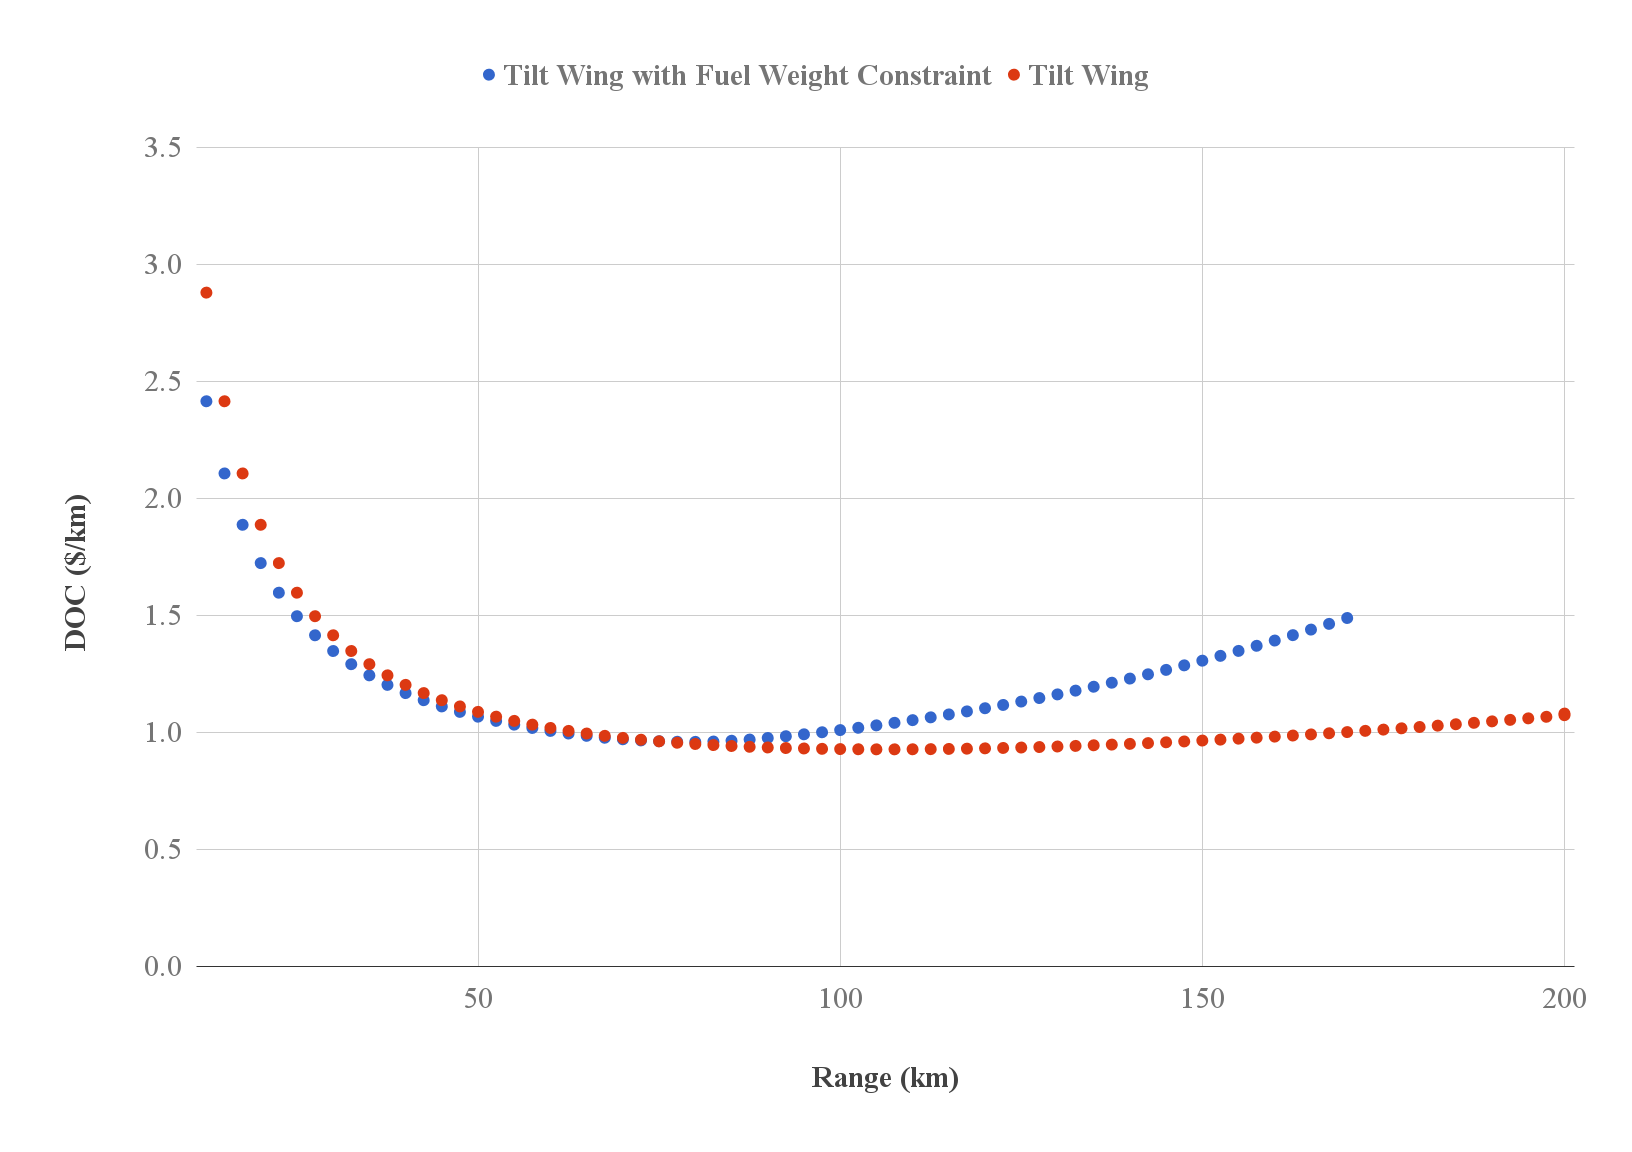 OpenMETA Vahana results: DOC vs. range for tilt-wing configuration with and without fuel weight constraint    Source:  METAMORPH, INC.